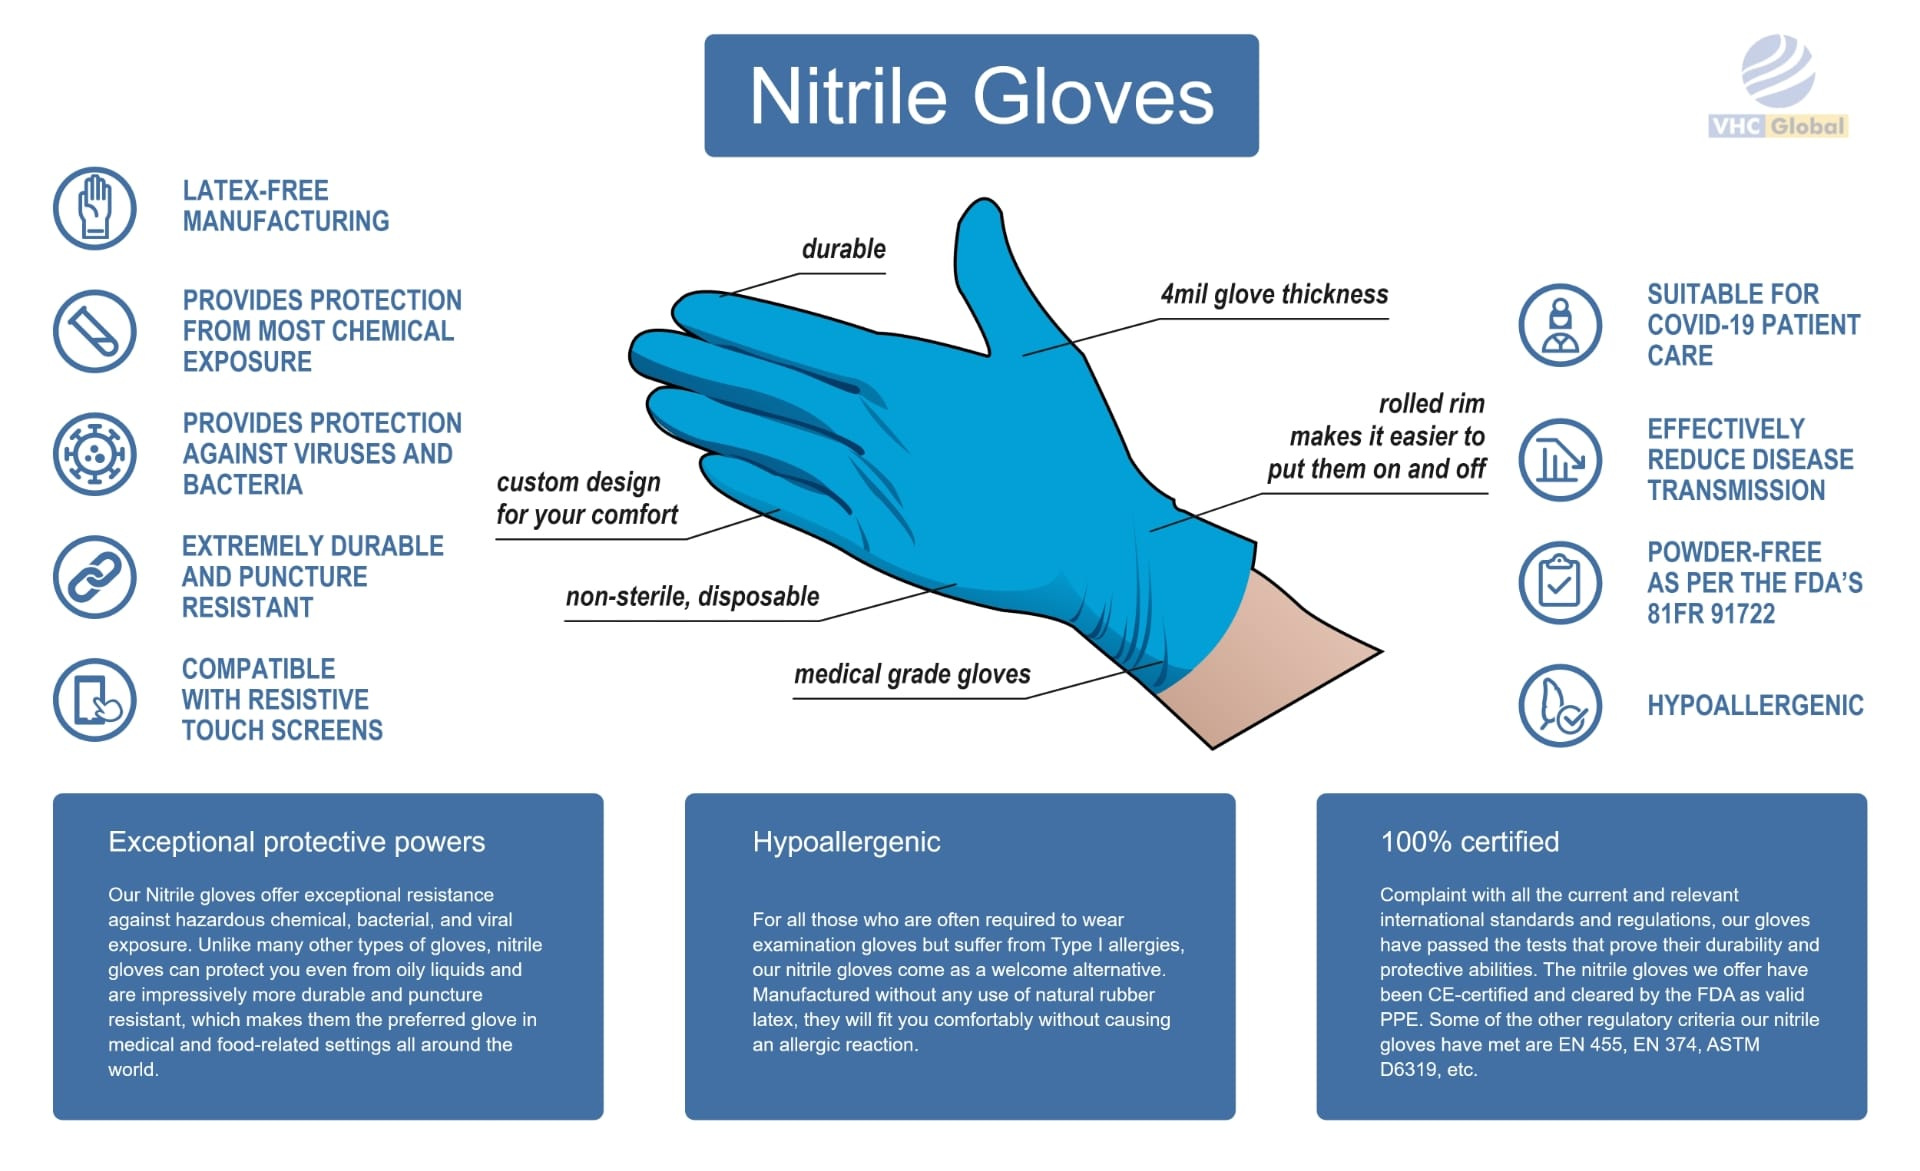 nitrile gloves infographic. Everything you need to know about Nitrile Gloves. LATEX FREE MANUFACTURING, PROVIDES PROTECTION FROM MOST CHEMICAL EXPOSURE,PROVIDES PROTECTION AGAINST VIRUSES AND BACTERIA, custom design for your comfort, durable, EXTREMELY DURABLE AND PUNCTURE RESISTANT, COMPATIBLE WITH RESISTIVE TOUCH SCREENS,SUITABLE FOR COVID-19 PATIENT CARE, EFFECTIVELY REDUCE DISEASE TRANSMISSION , POWDER-FREE AS PER THE FDA'S 81FR 91722, HYPOALLERGENIC